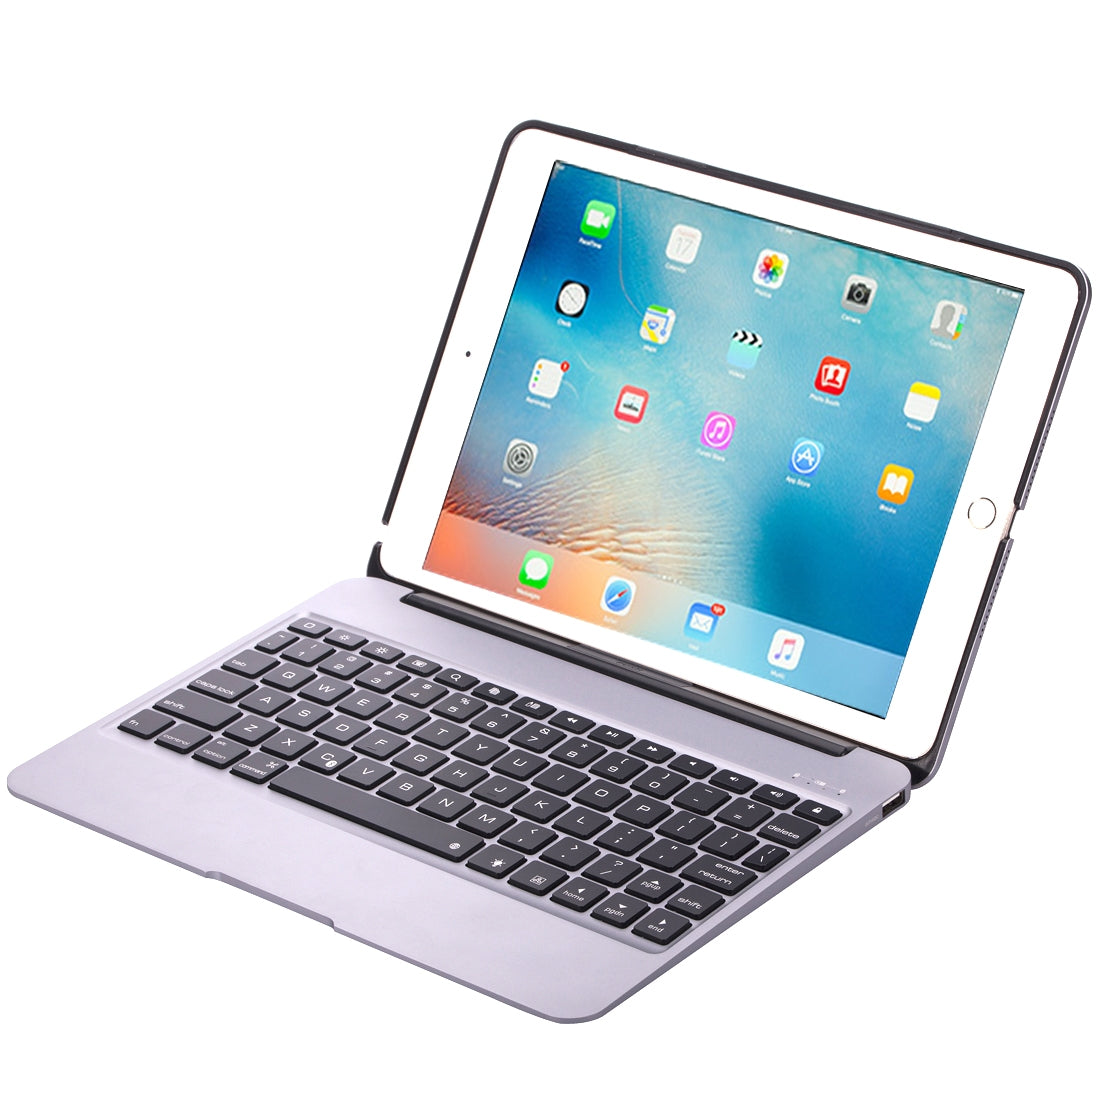 F06 for iPad Pro 9.7 inch / iPad Air 2 Portable Foldable Aluminium Alloy Wireless Bluetooth Backlight Keyboard(Silver)